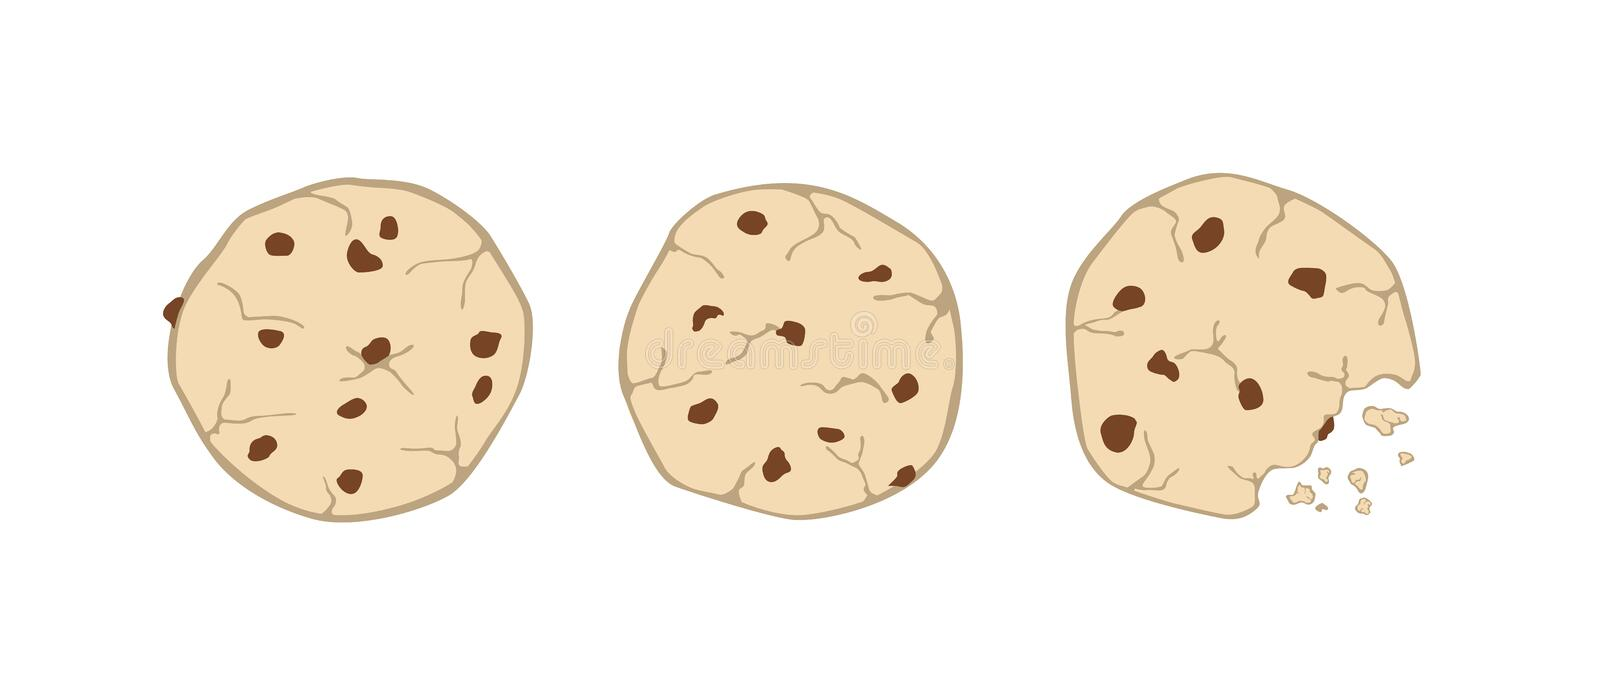 Set of three cartoon cute cookies isolated on white backg royalty free illustration